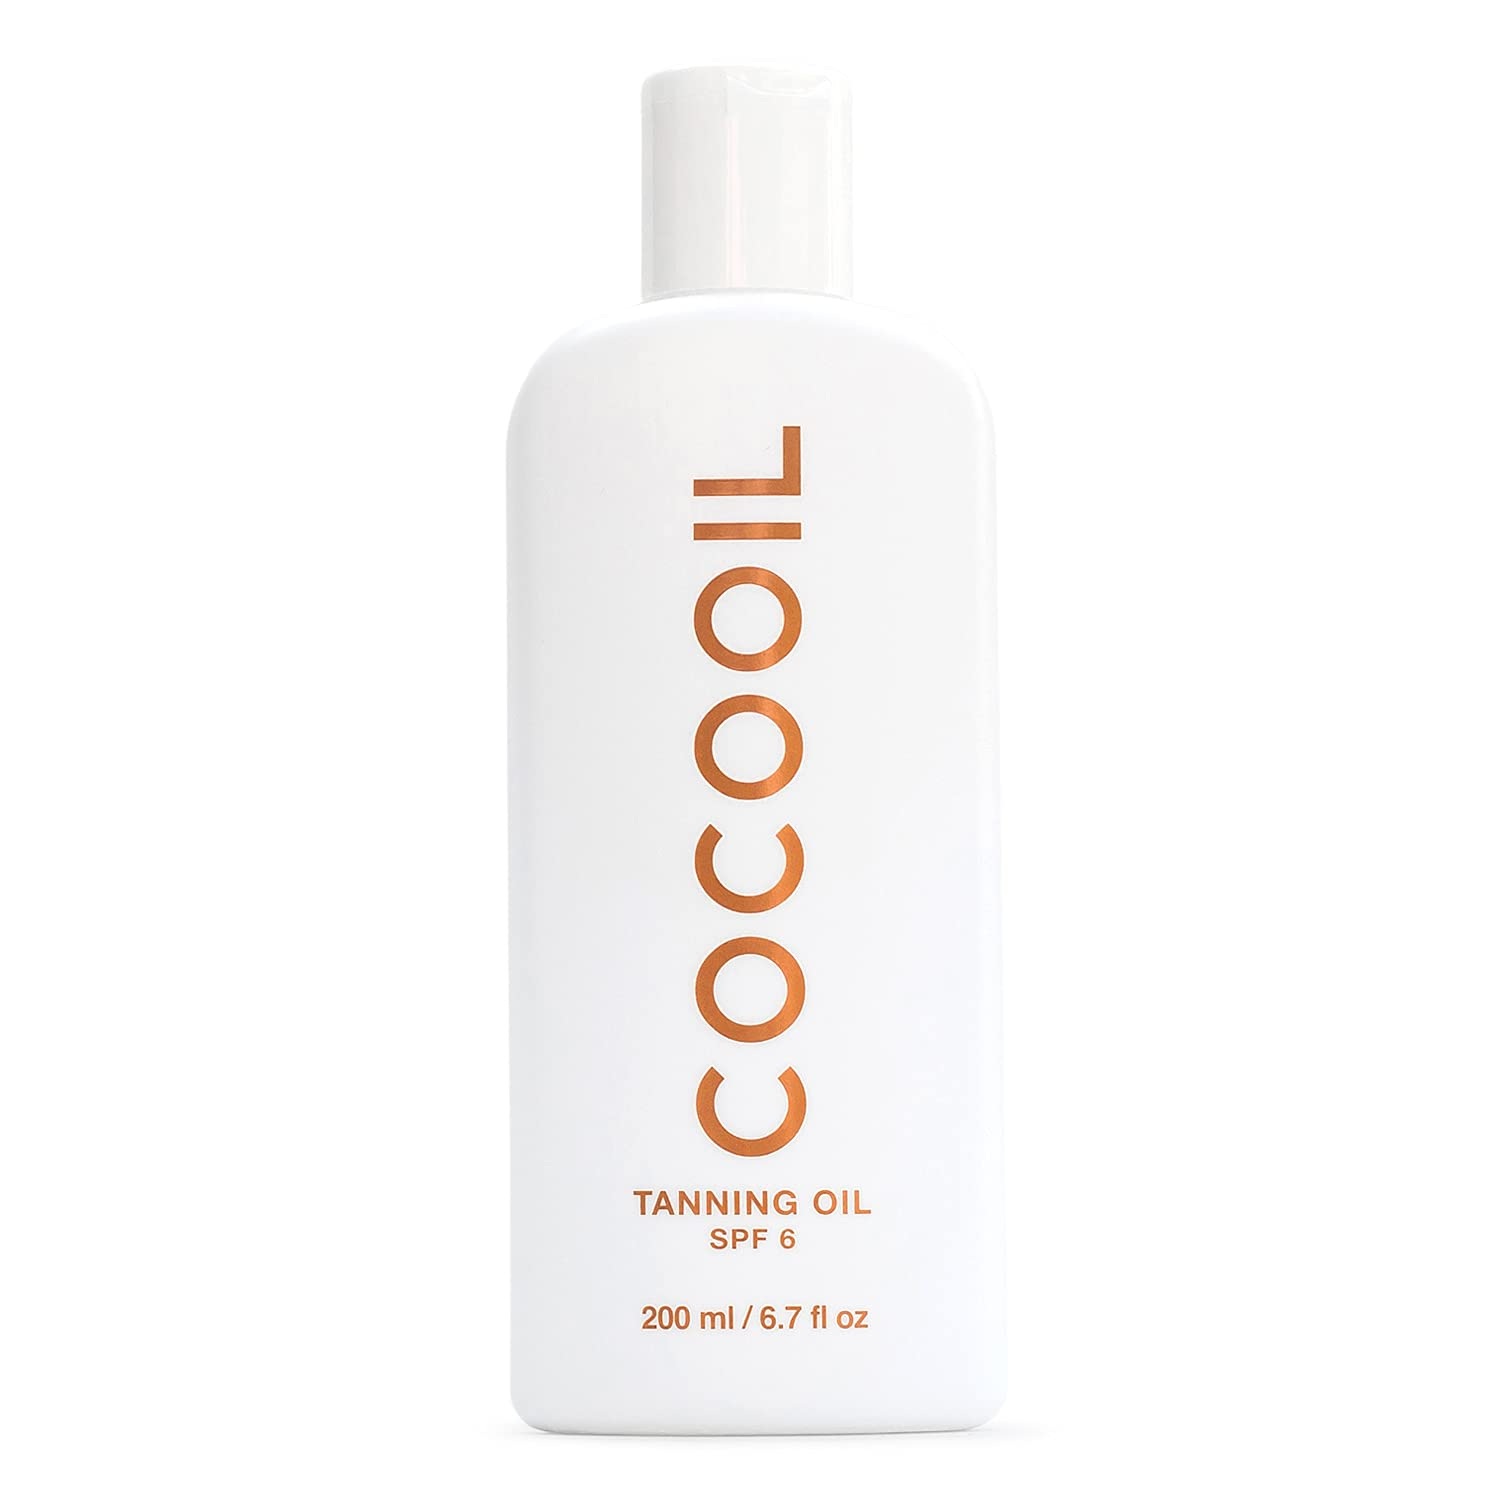 COCOOIL Detroit Mall Tanning Oil SPF 6 free Natural Botanic Coconut Organic